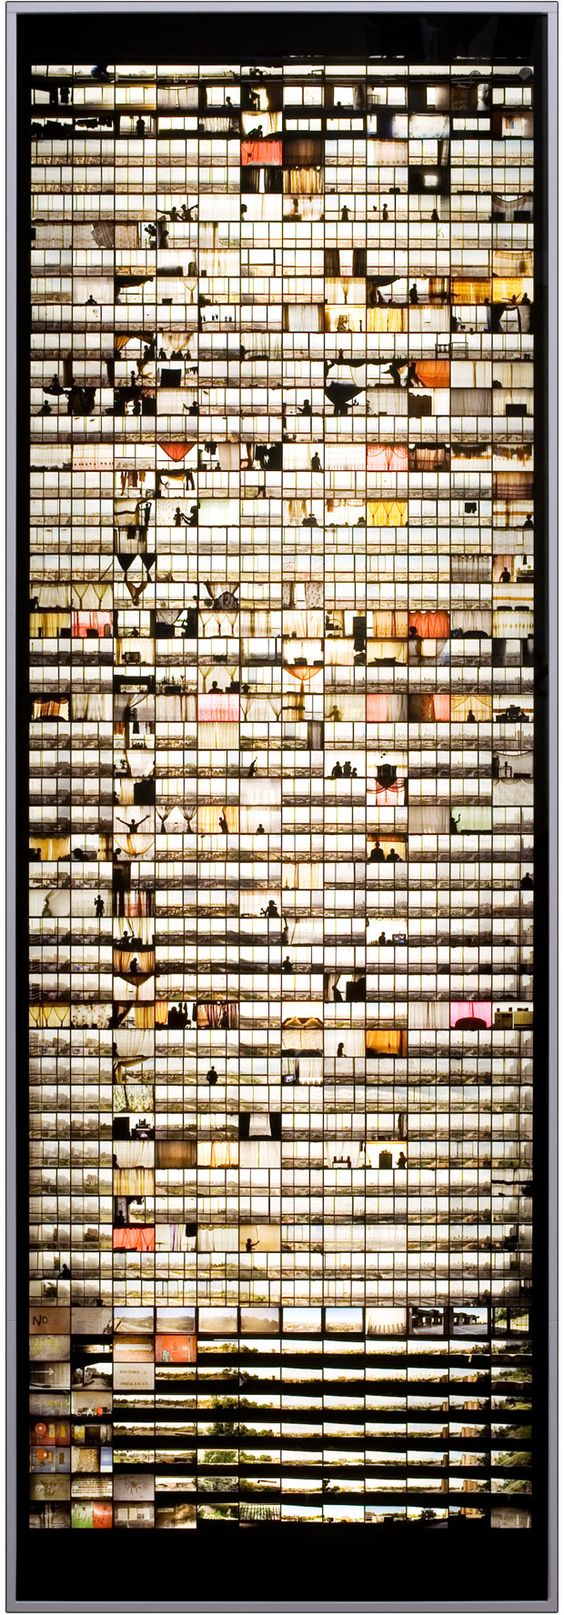 mpdrolet:  Windows, from Ponte City Mikhael Subotzky, in collaboration with Patrick Waterhouse *click through to see larger